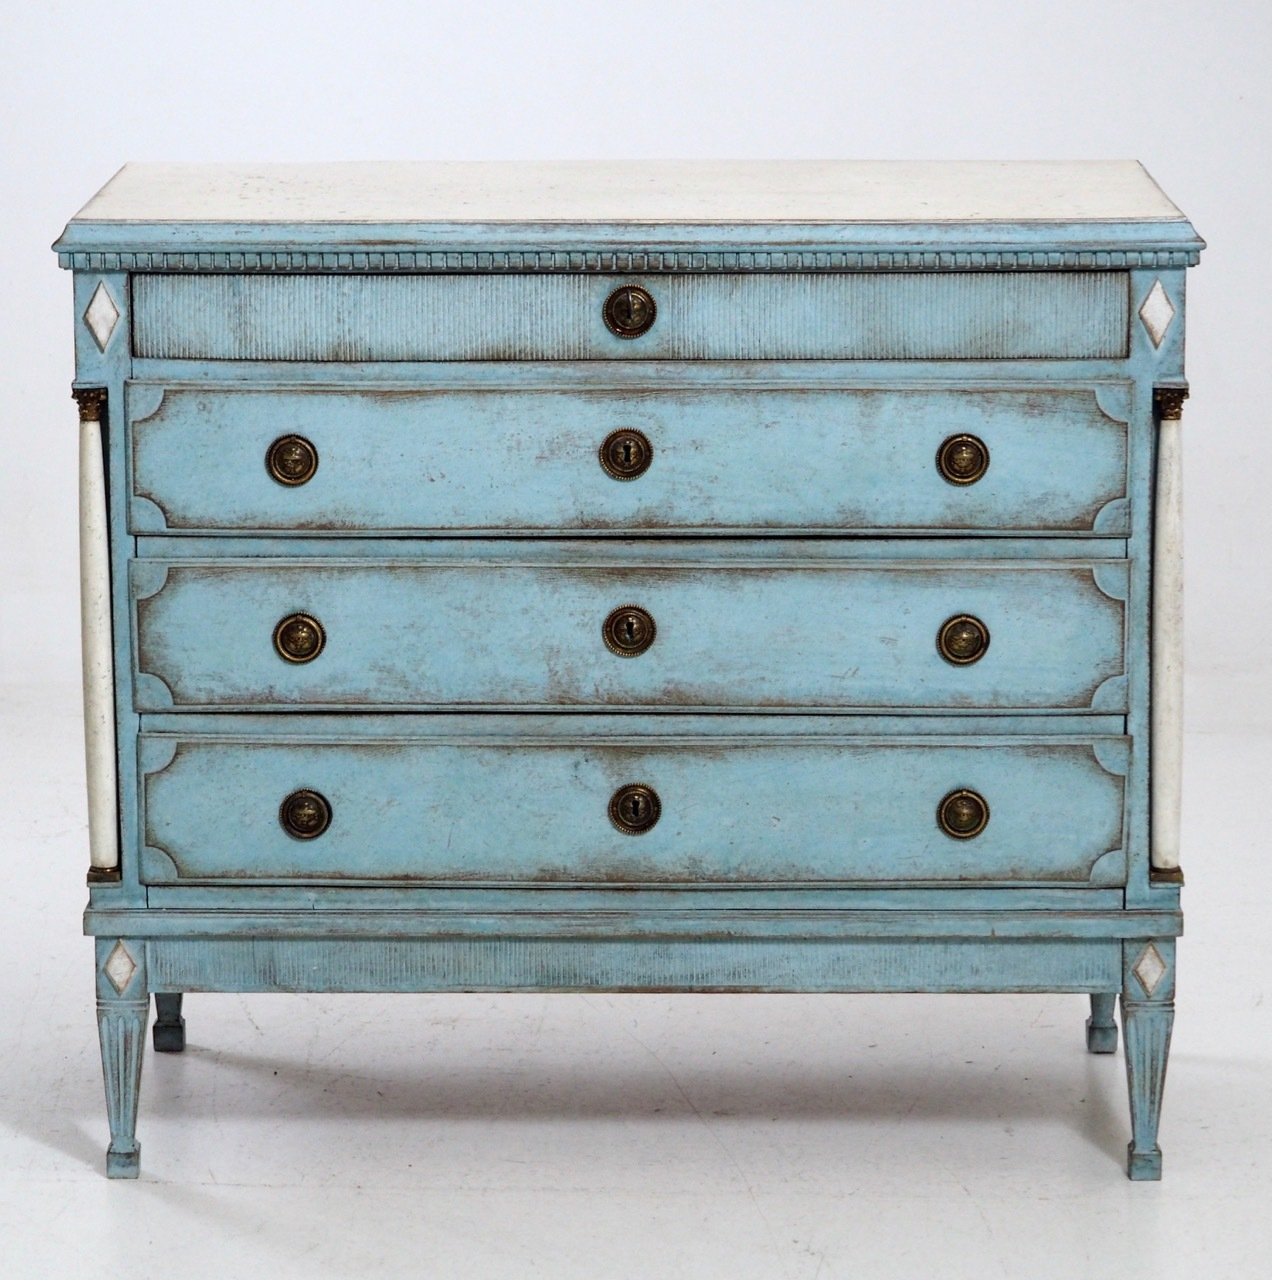 Very fine Gustavian chest, circa 1800 - € 1.800